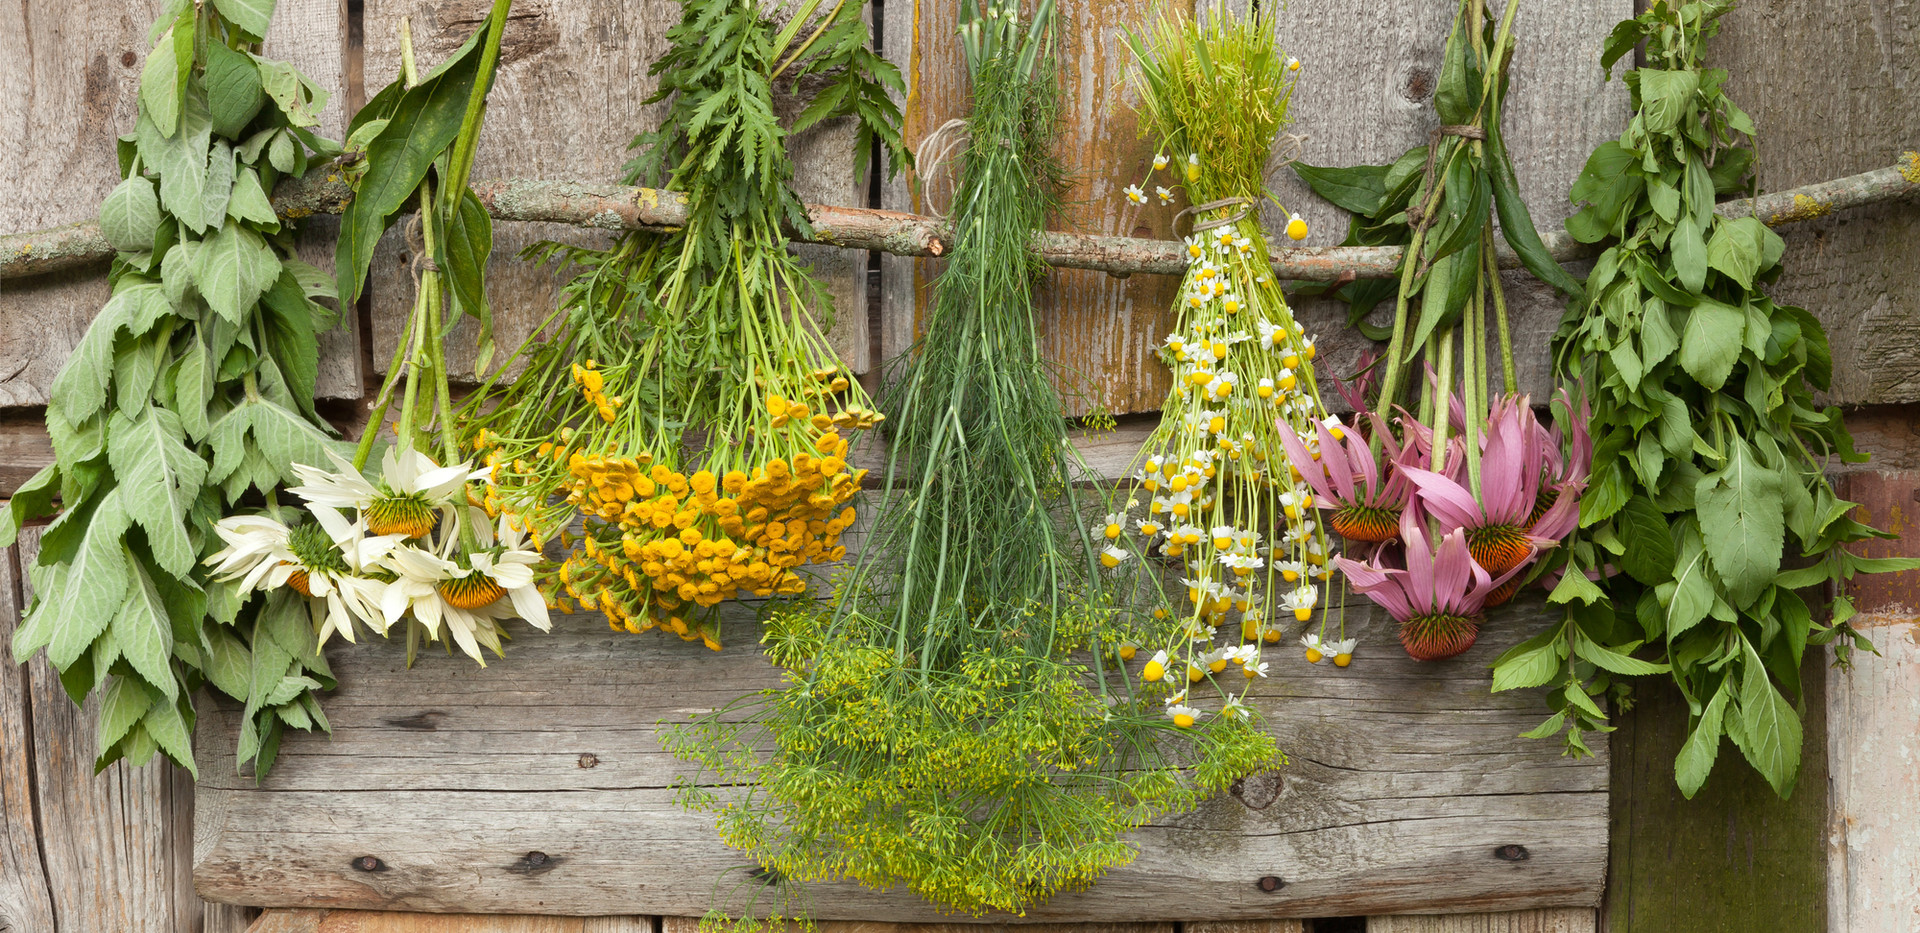 Drying Herbs.JPG